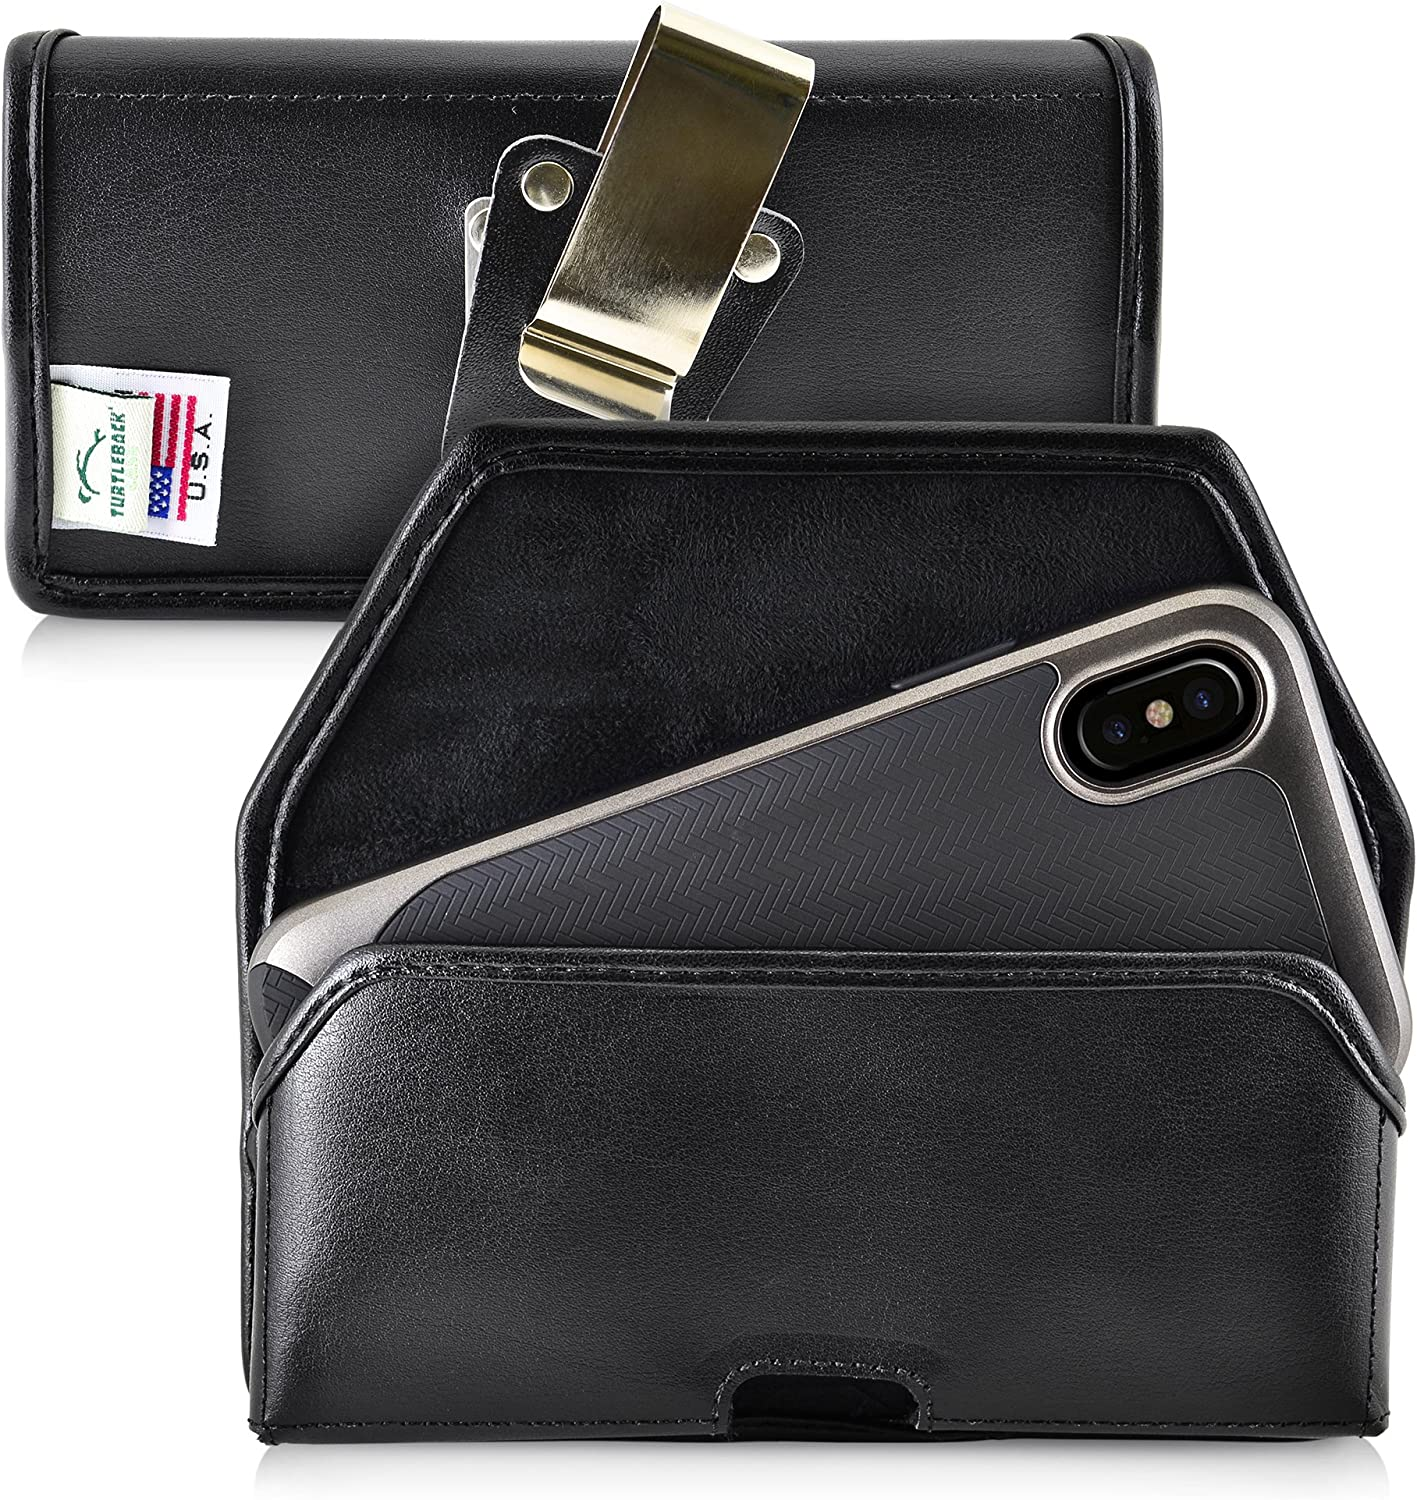 Turtleback Belt Case Designed for iPhone 11 Pro (2019) iPhone Xs (2018) and iPhone X (2017) Holster Black Leather Pouch with Heavy Duty Rotating Belt Clip, Horizontal Made in USA